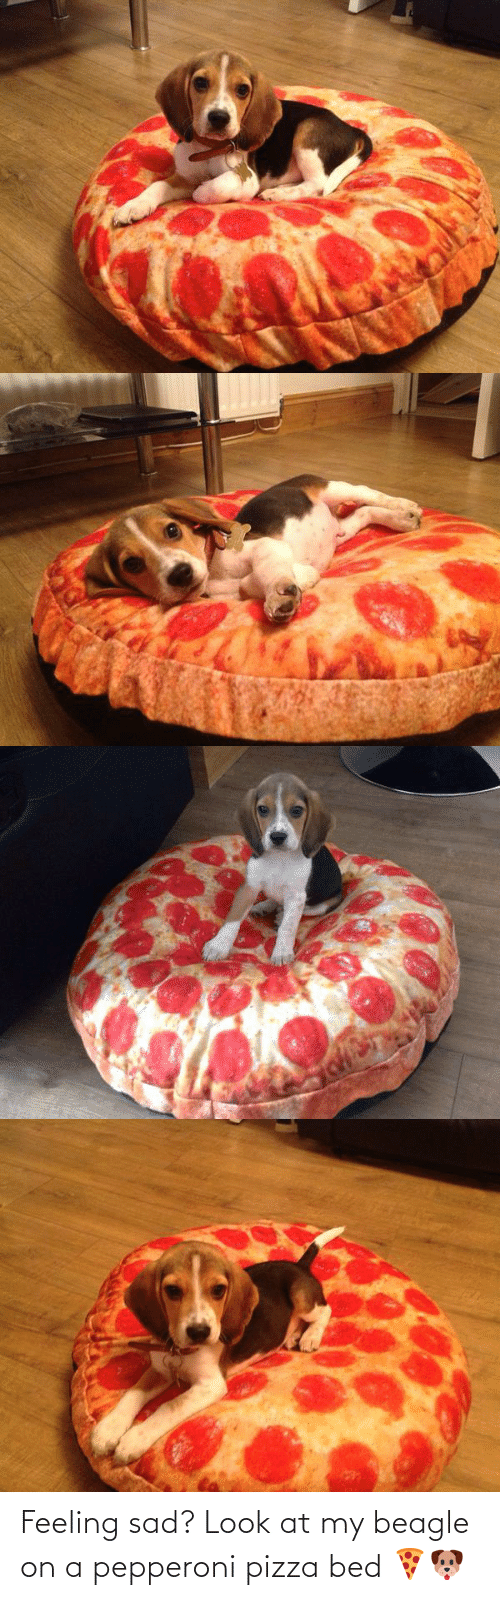 pizza: Feeling sad? Look at my beagle on a pepperoni pizza bed 🍕🐶